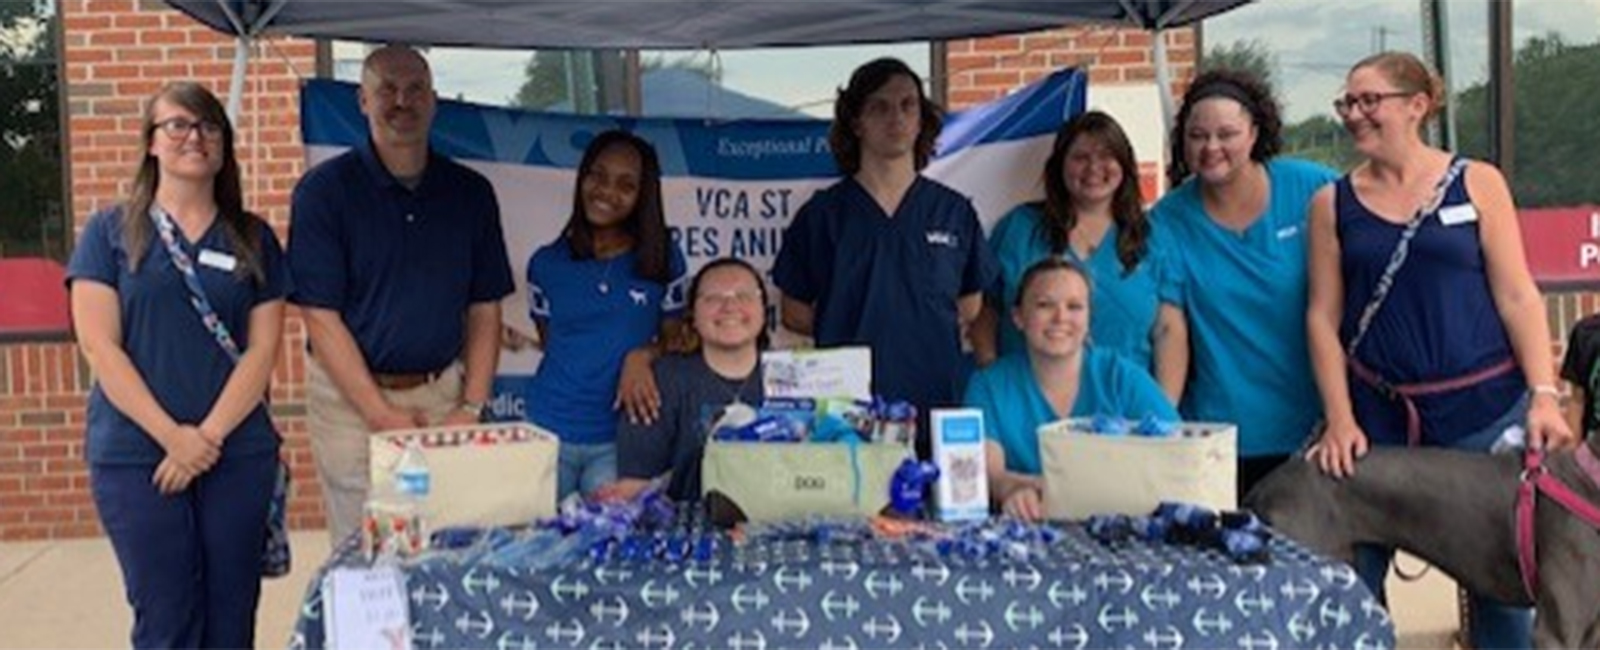 Team Picture of VCA St. Clair Shores Animal Hospital